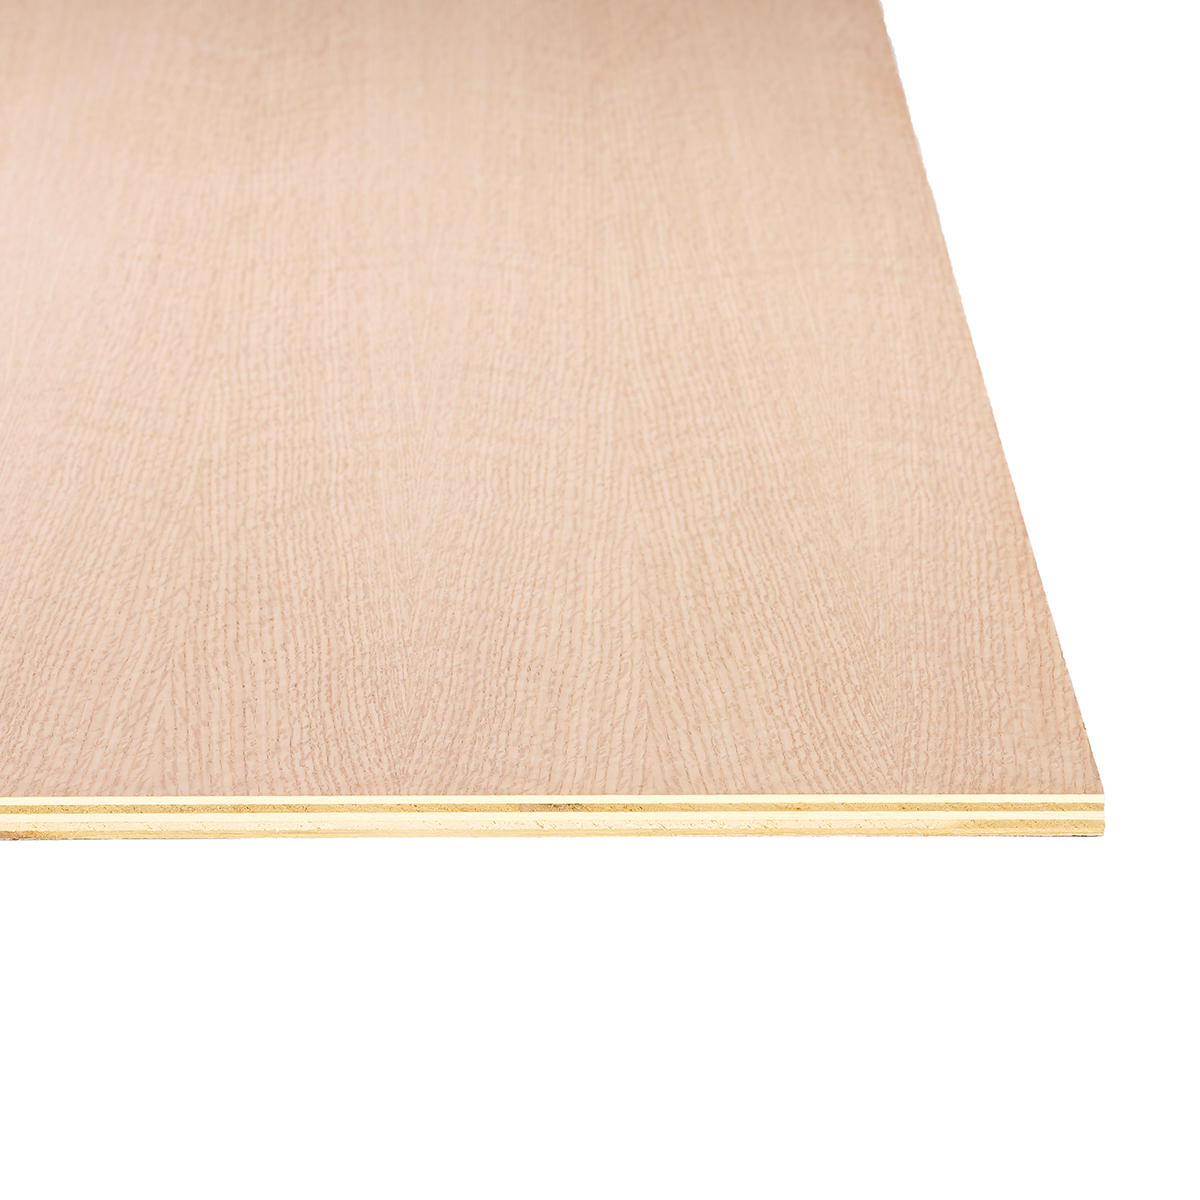 3 4 Quarter Sawn Red Oak 4 X8 Plywood G2s Made In Usa